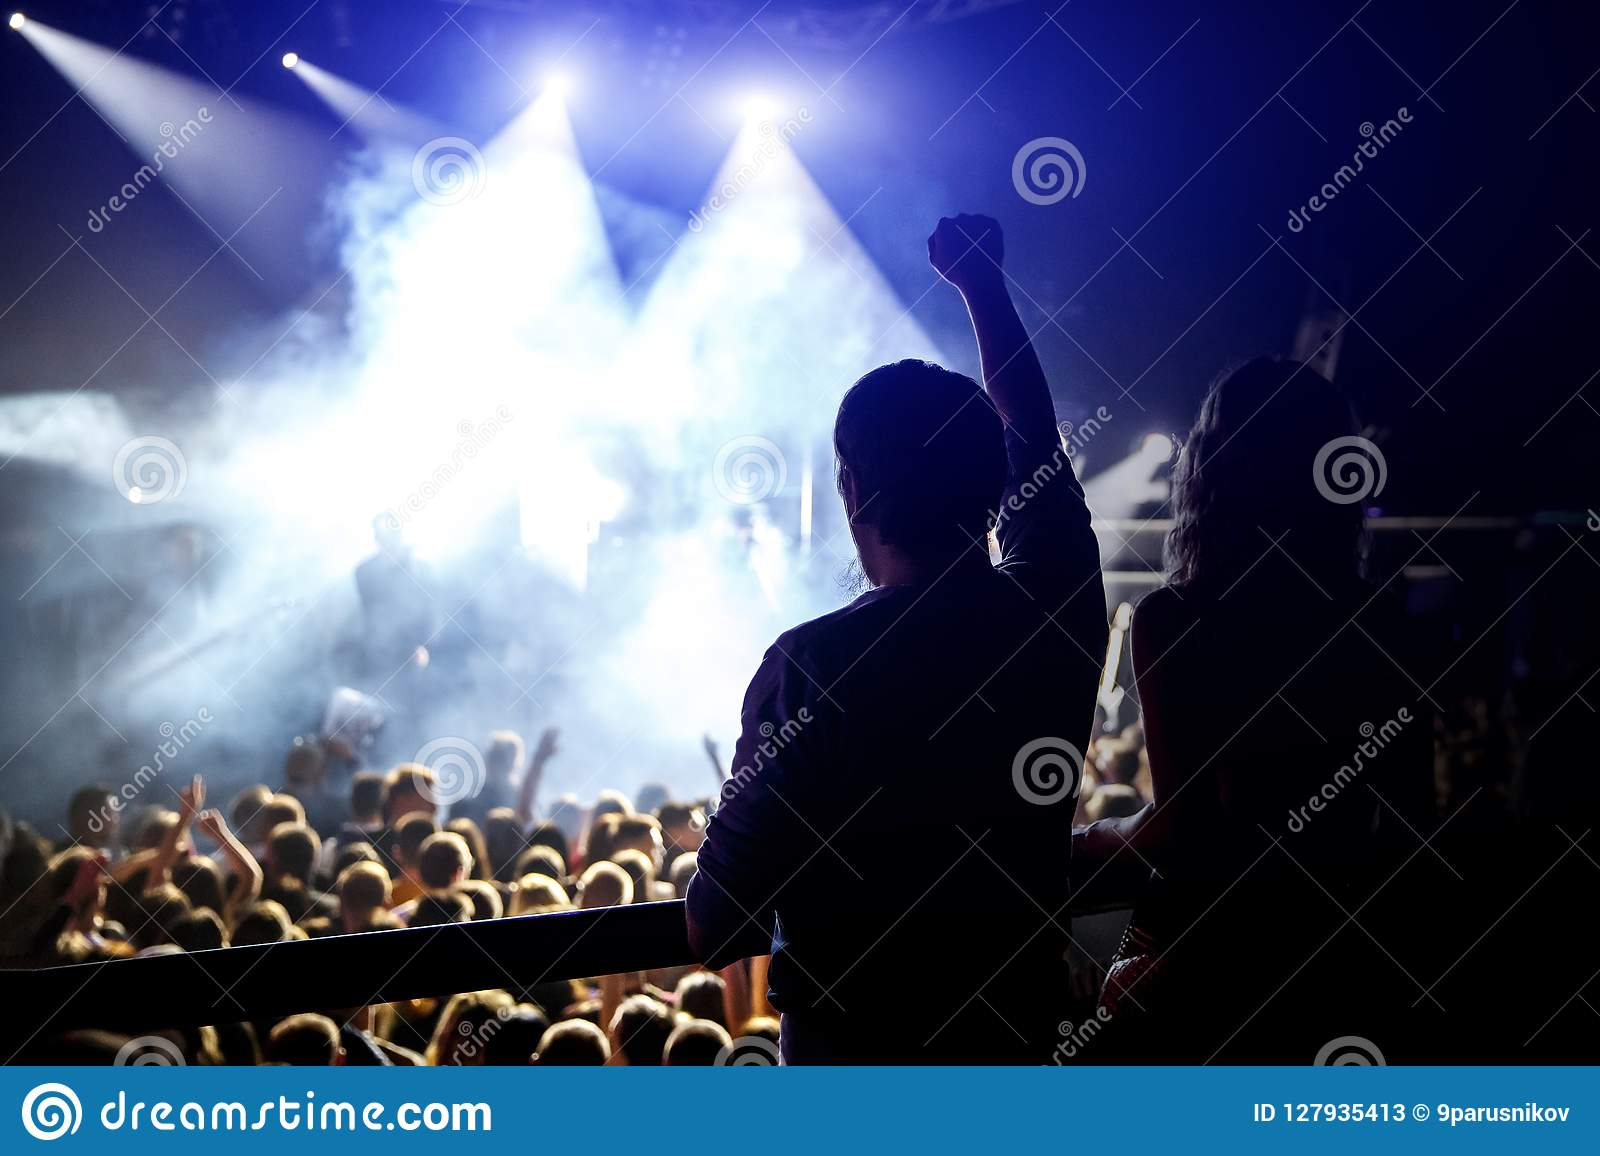 Happy people enjoying rock concert, raised up hands and clapping of pleasure, active night life concept